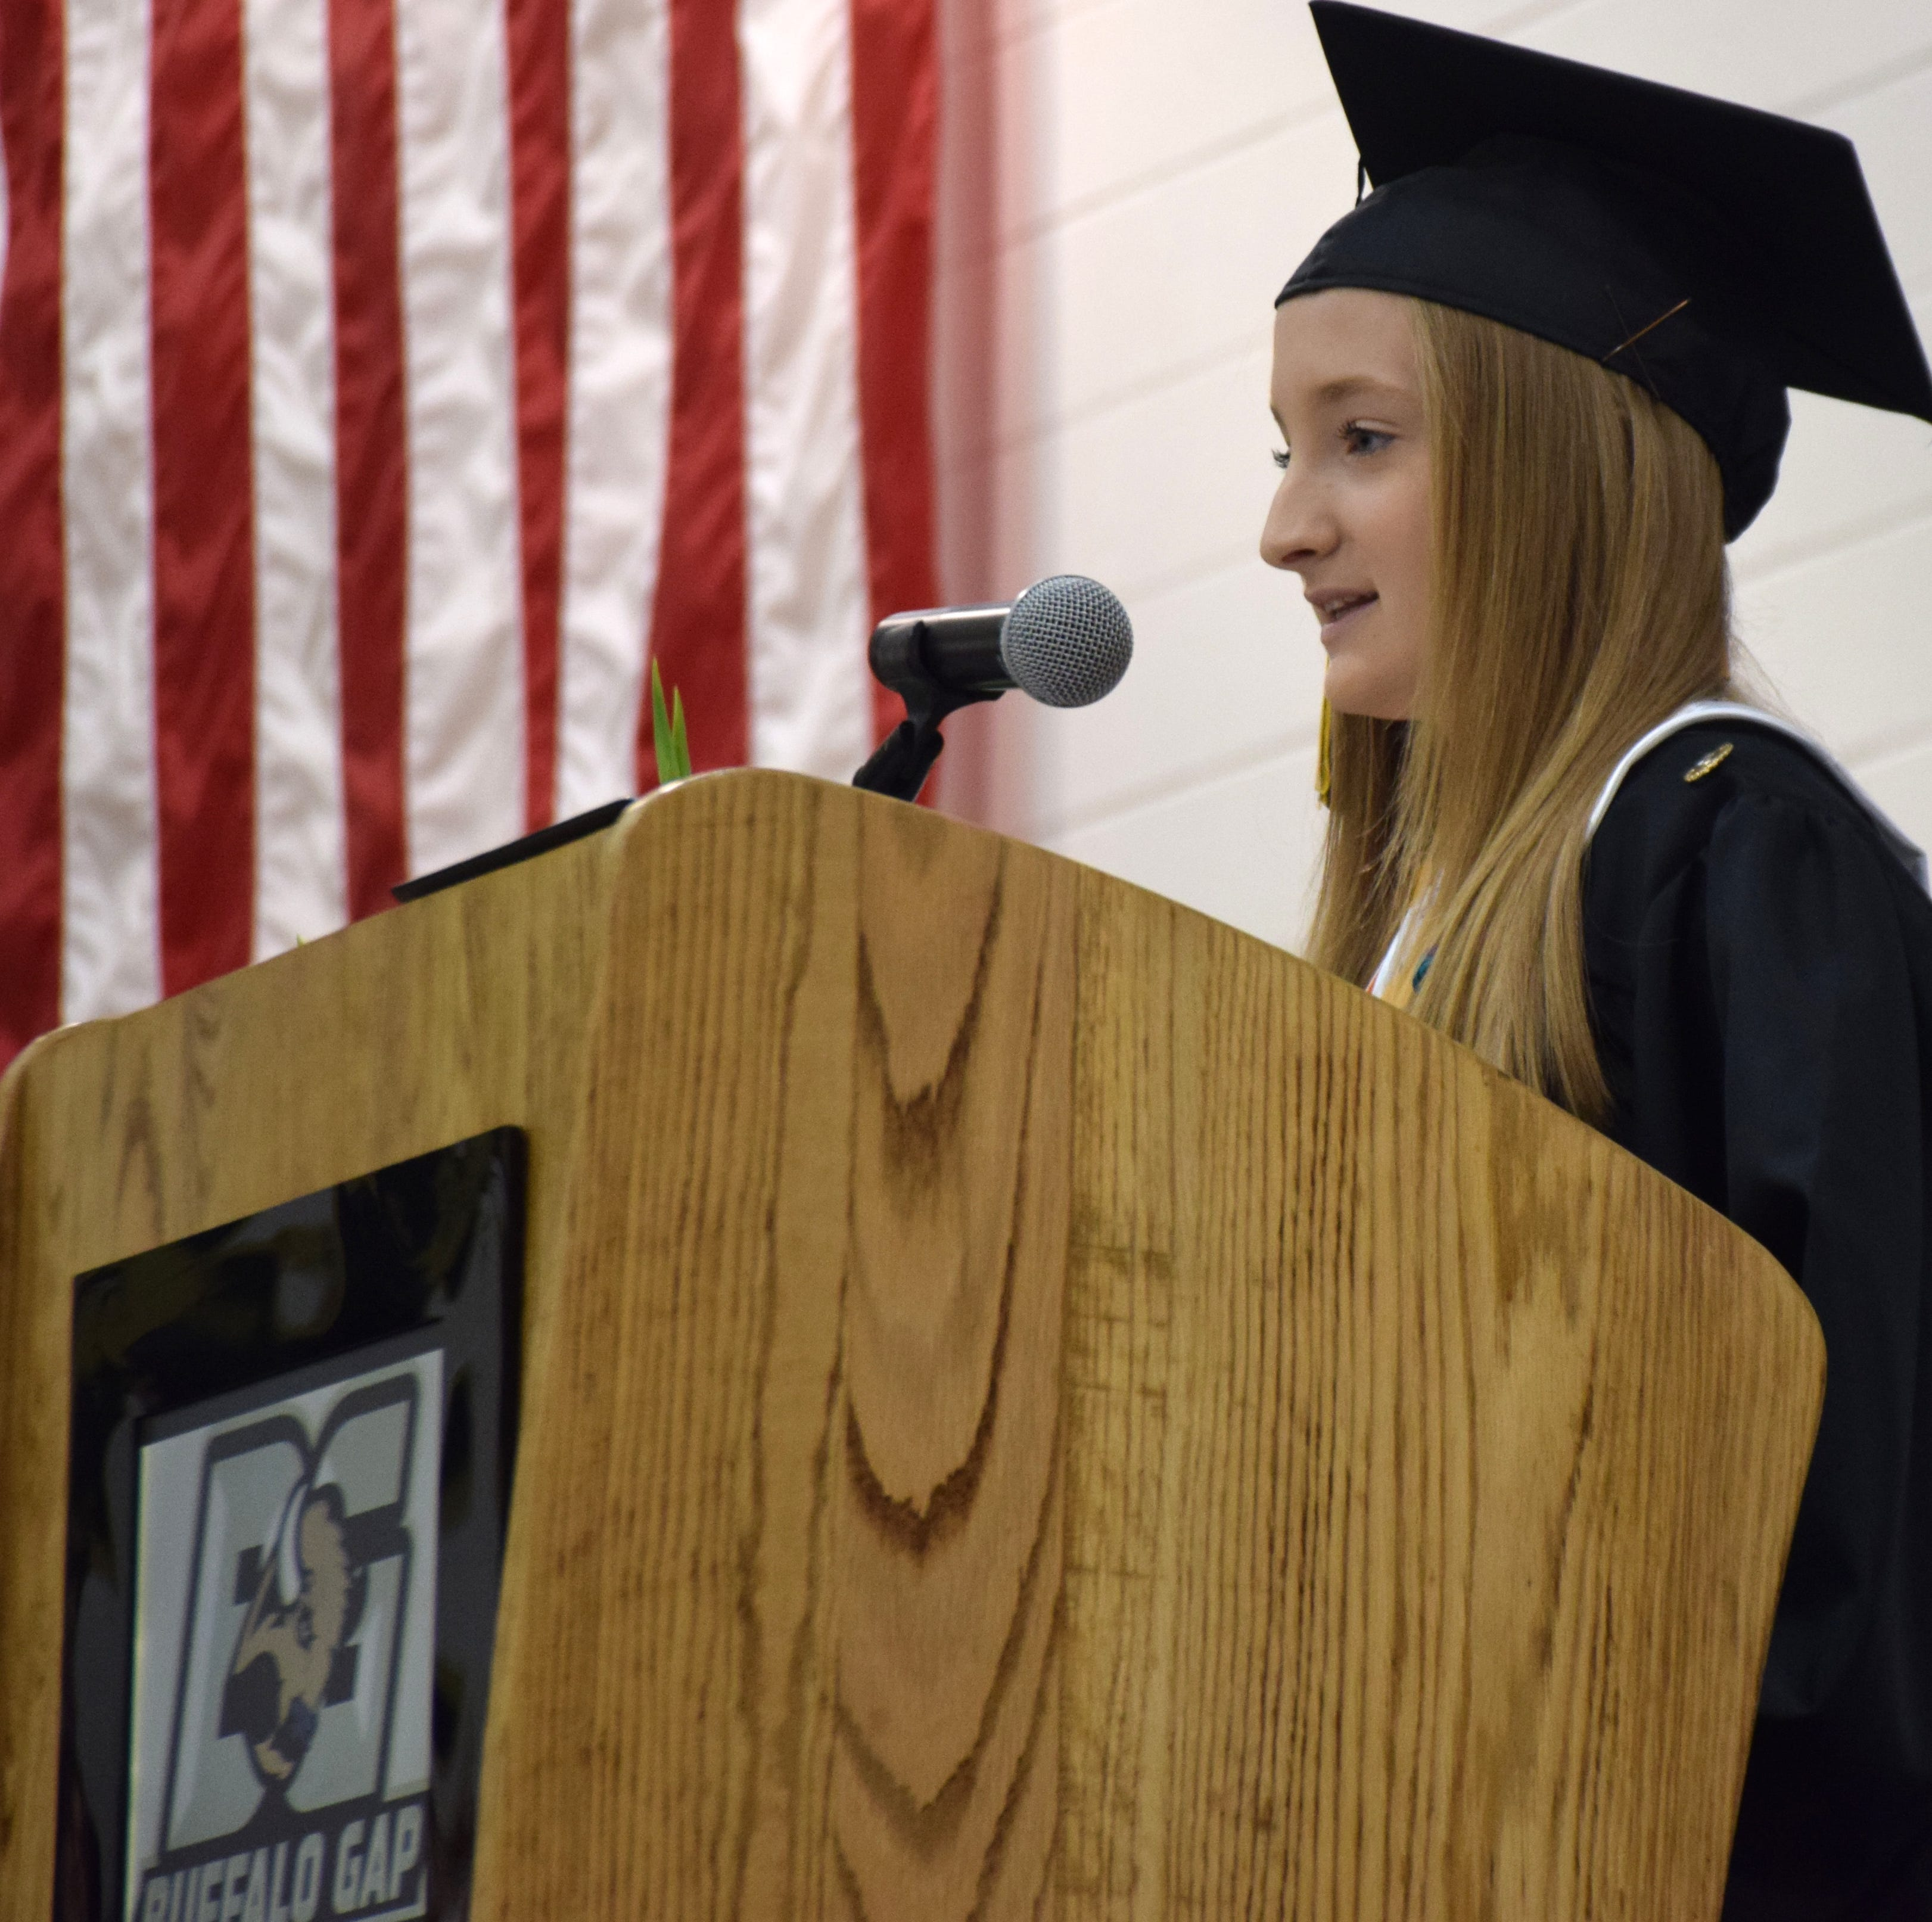 Photos: Buffalo Gap Commencement